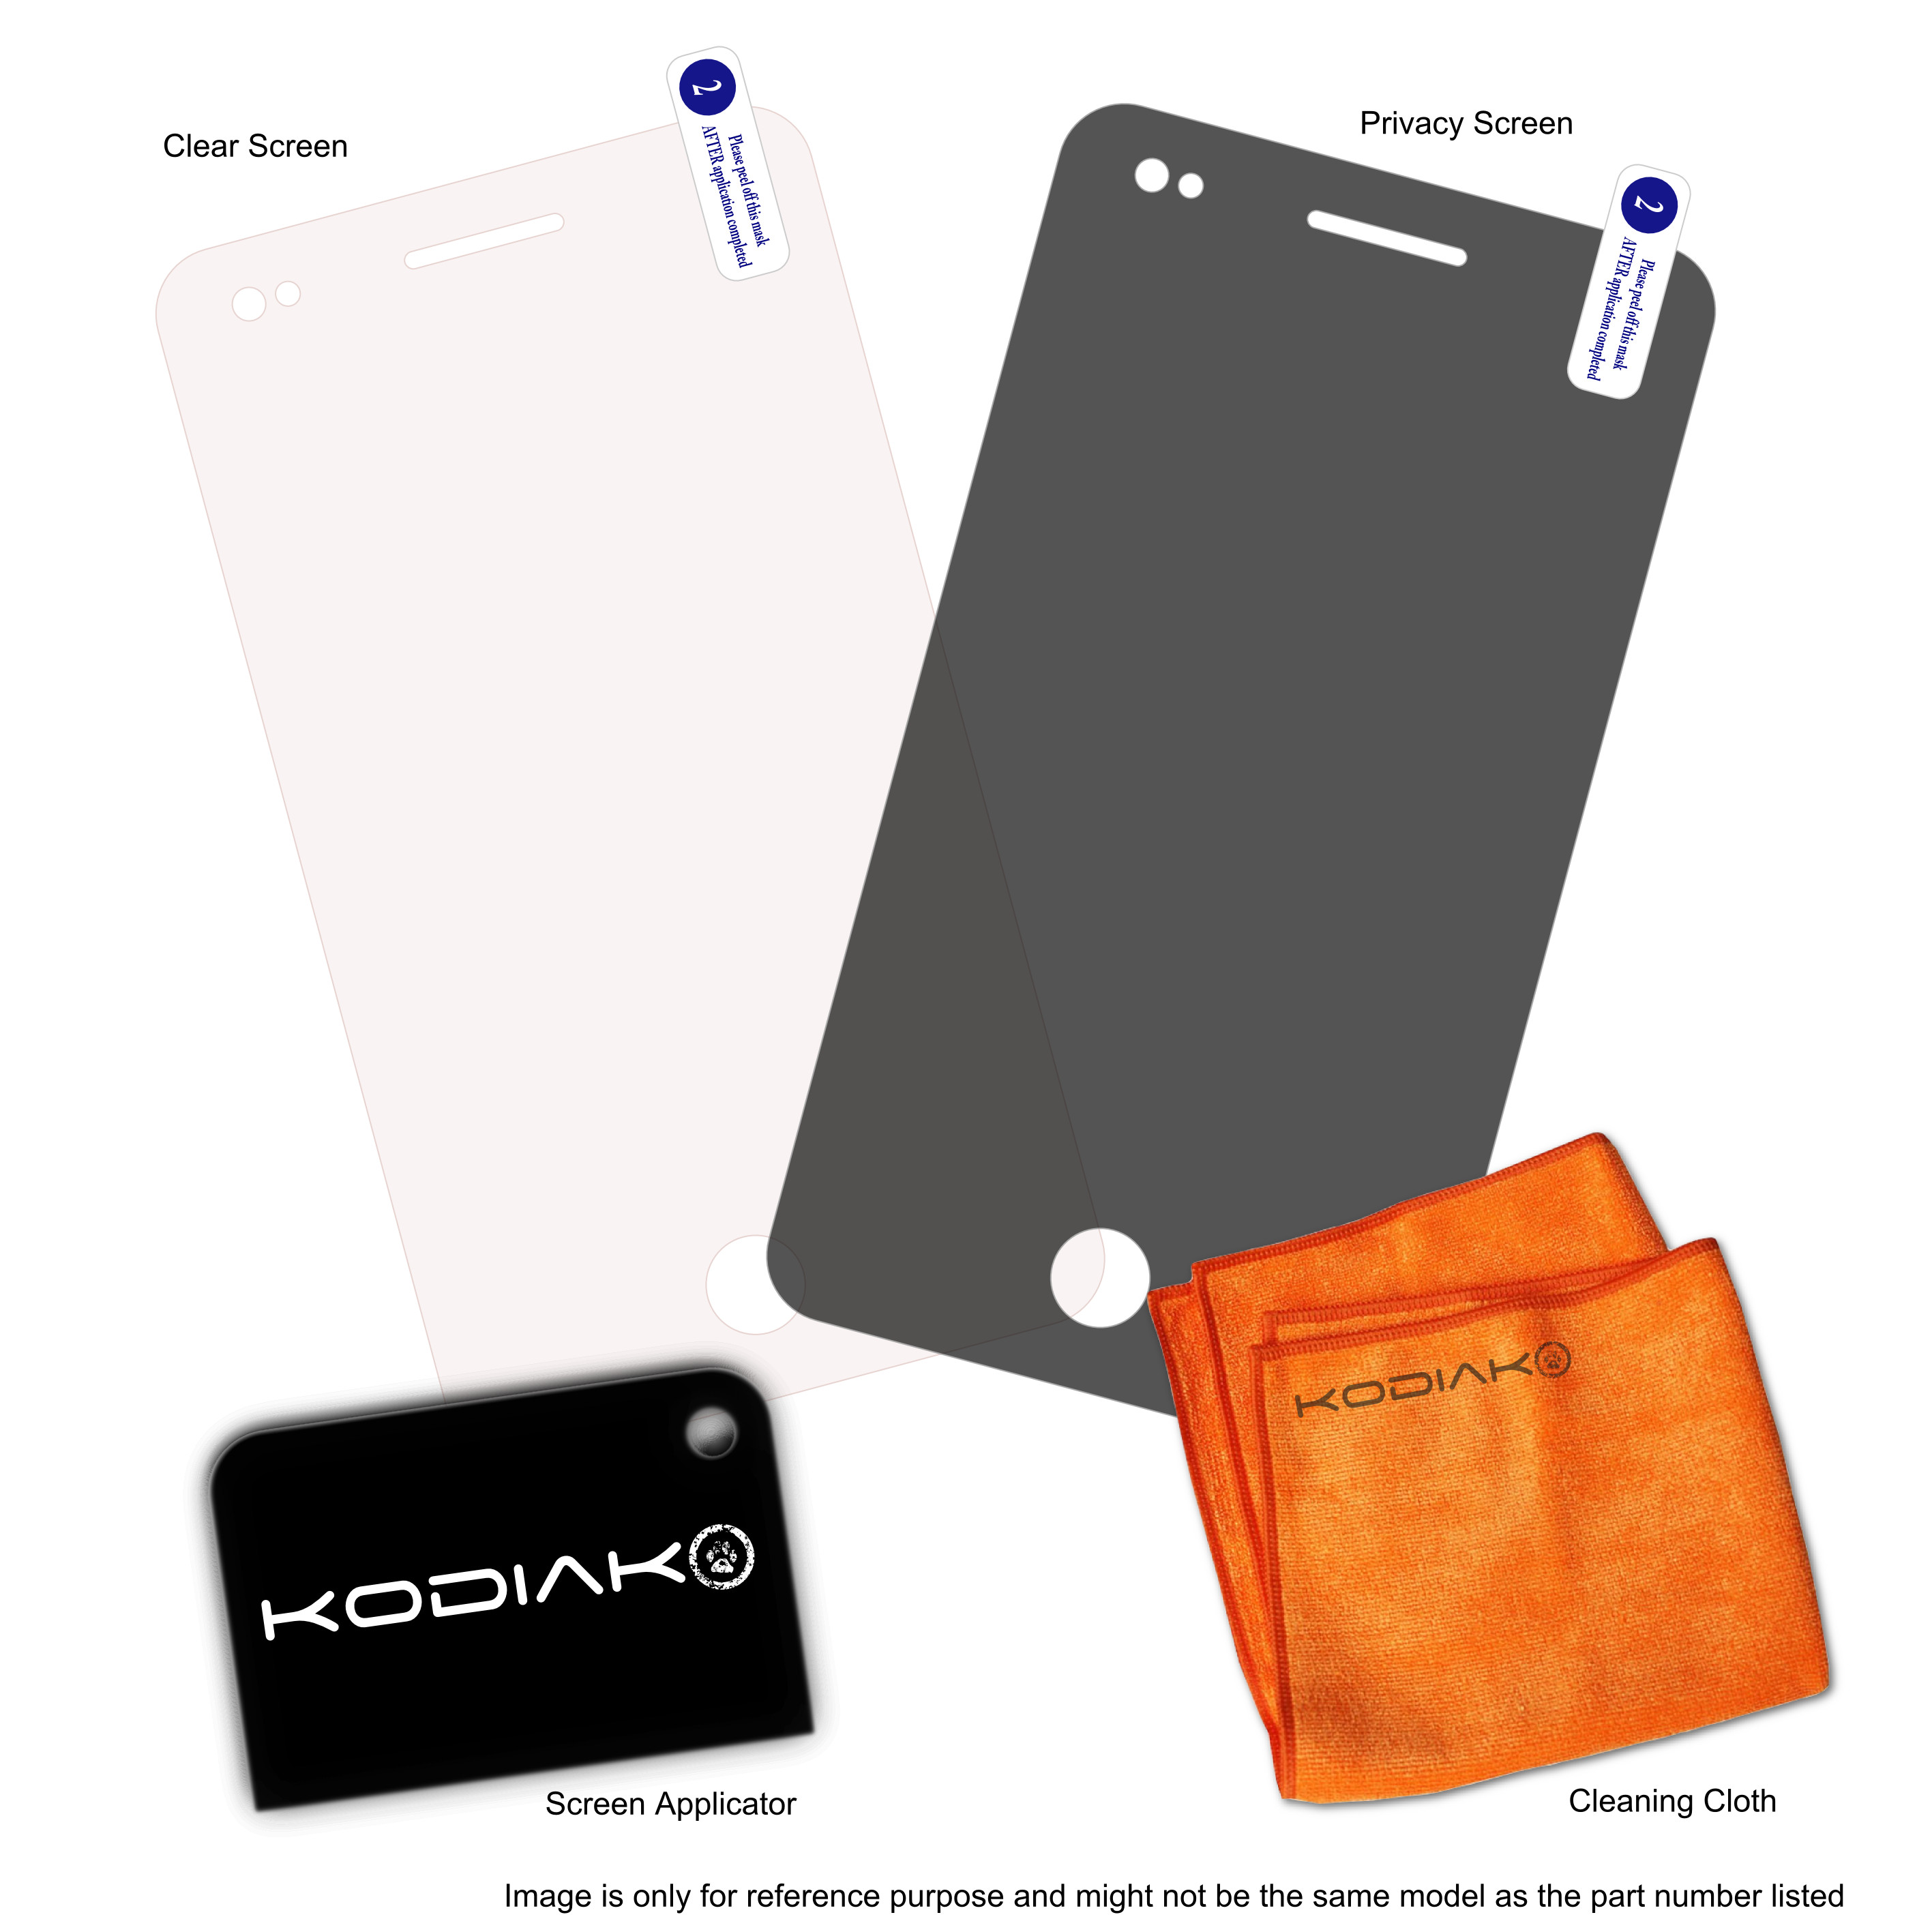 original-kodiak-screen-protector-ipod-touch-iprotect-2-package-clear-privacy